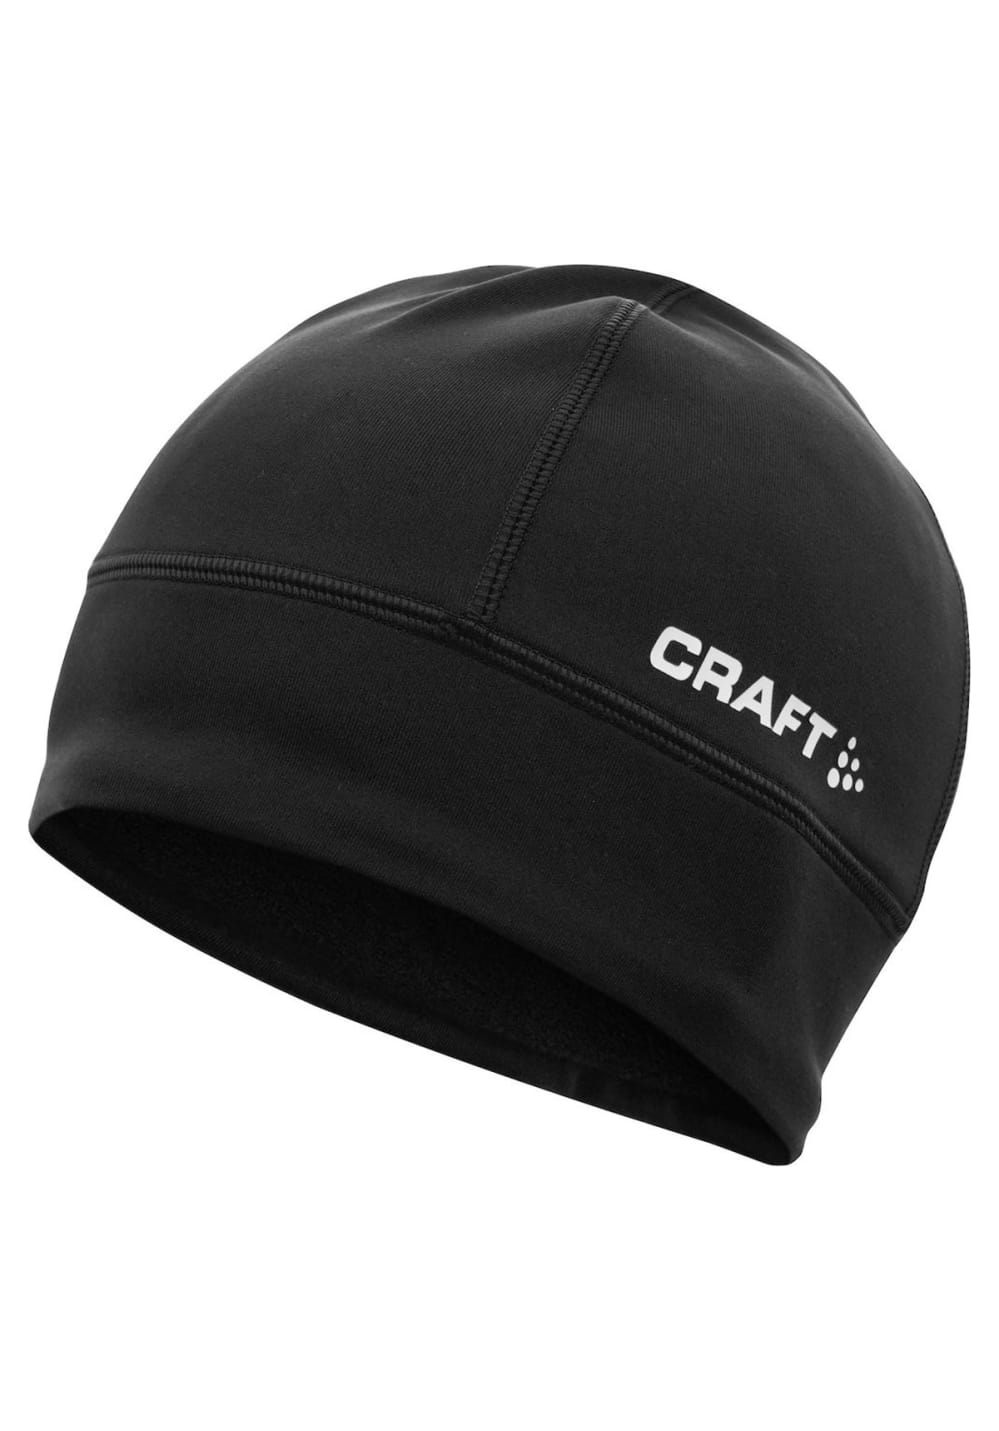 Craft Light Thermal Hat Mützen - Schwarz, Gr. S/M